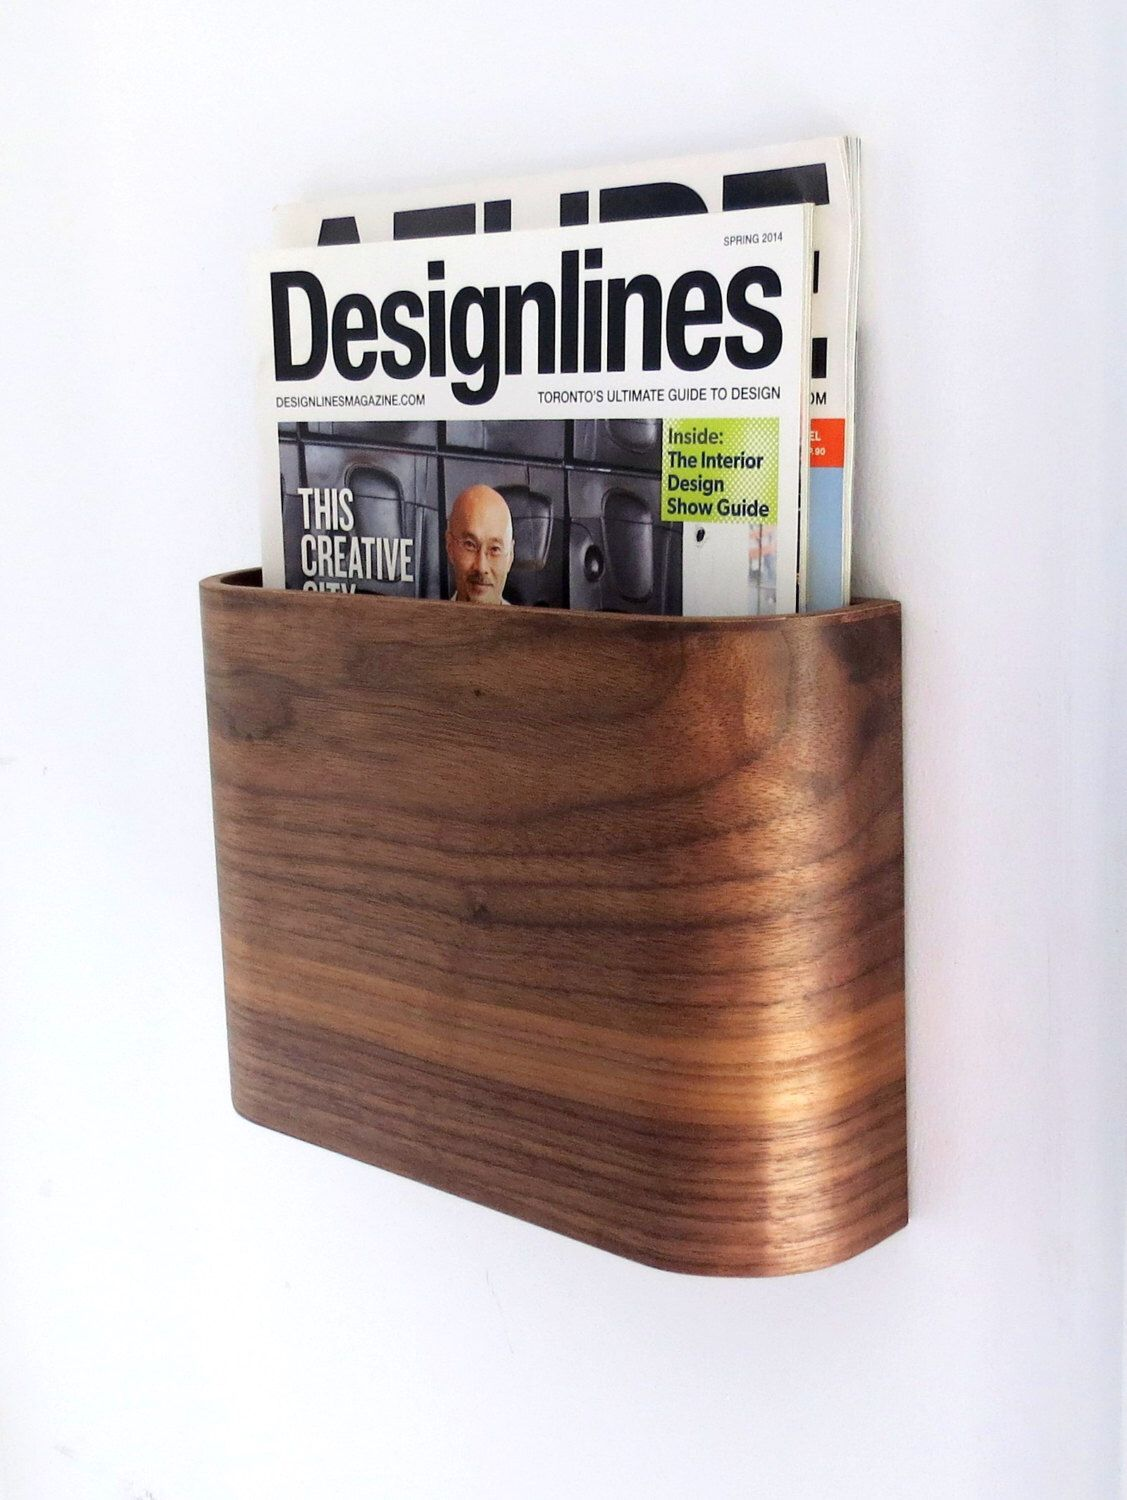 Magazine Rack - Wall hung wooden magazine holder by offcutstudio on Etsy  https://